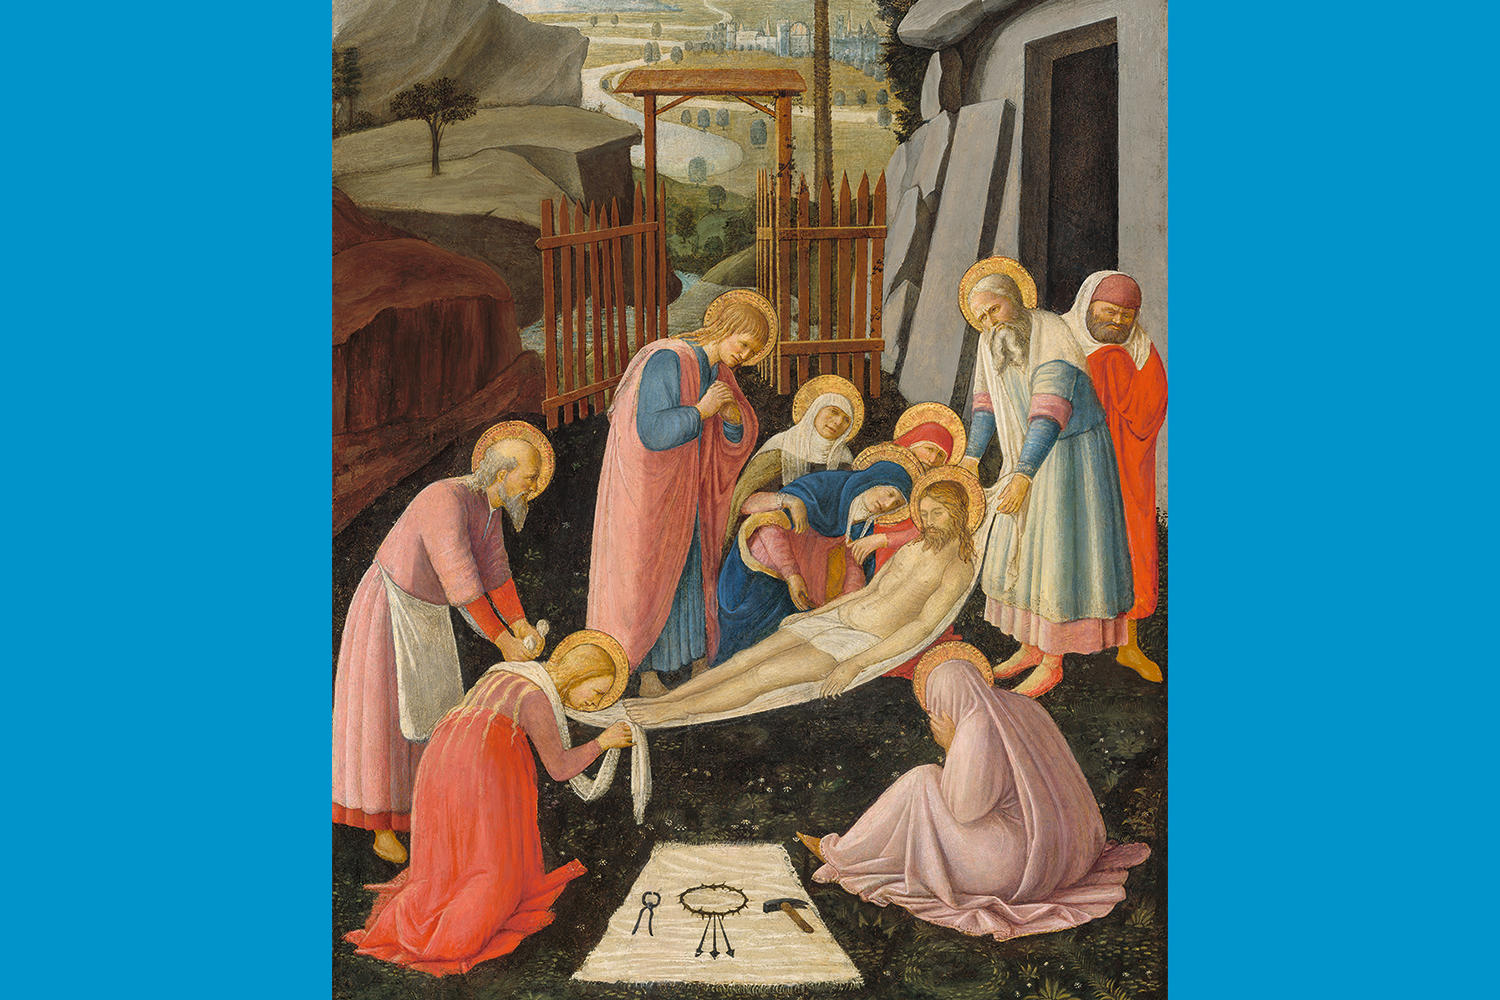 Fra Angelico (Italian, about 1400 - 1455), The Entombment of Christ, about 1450. Tempera and gold on poplar panel, 88.9 x 54.9 cm (35 x 21 5/8 in.) National Gallery of Art, Washington (1939.1.260).